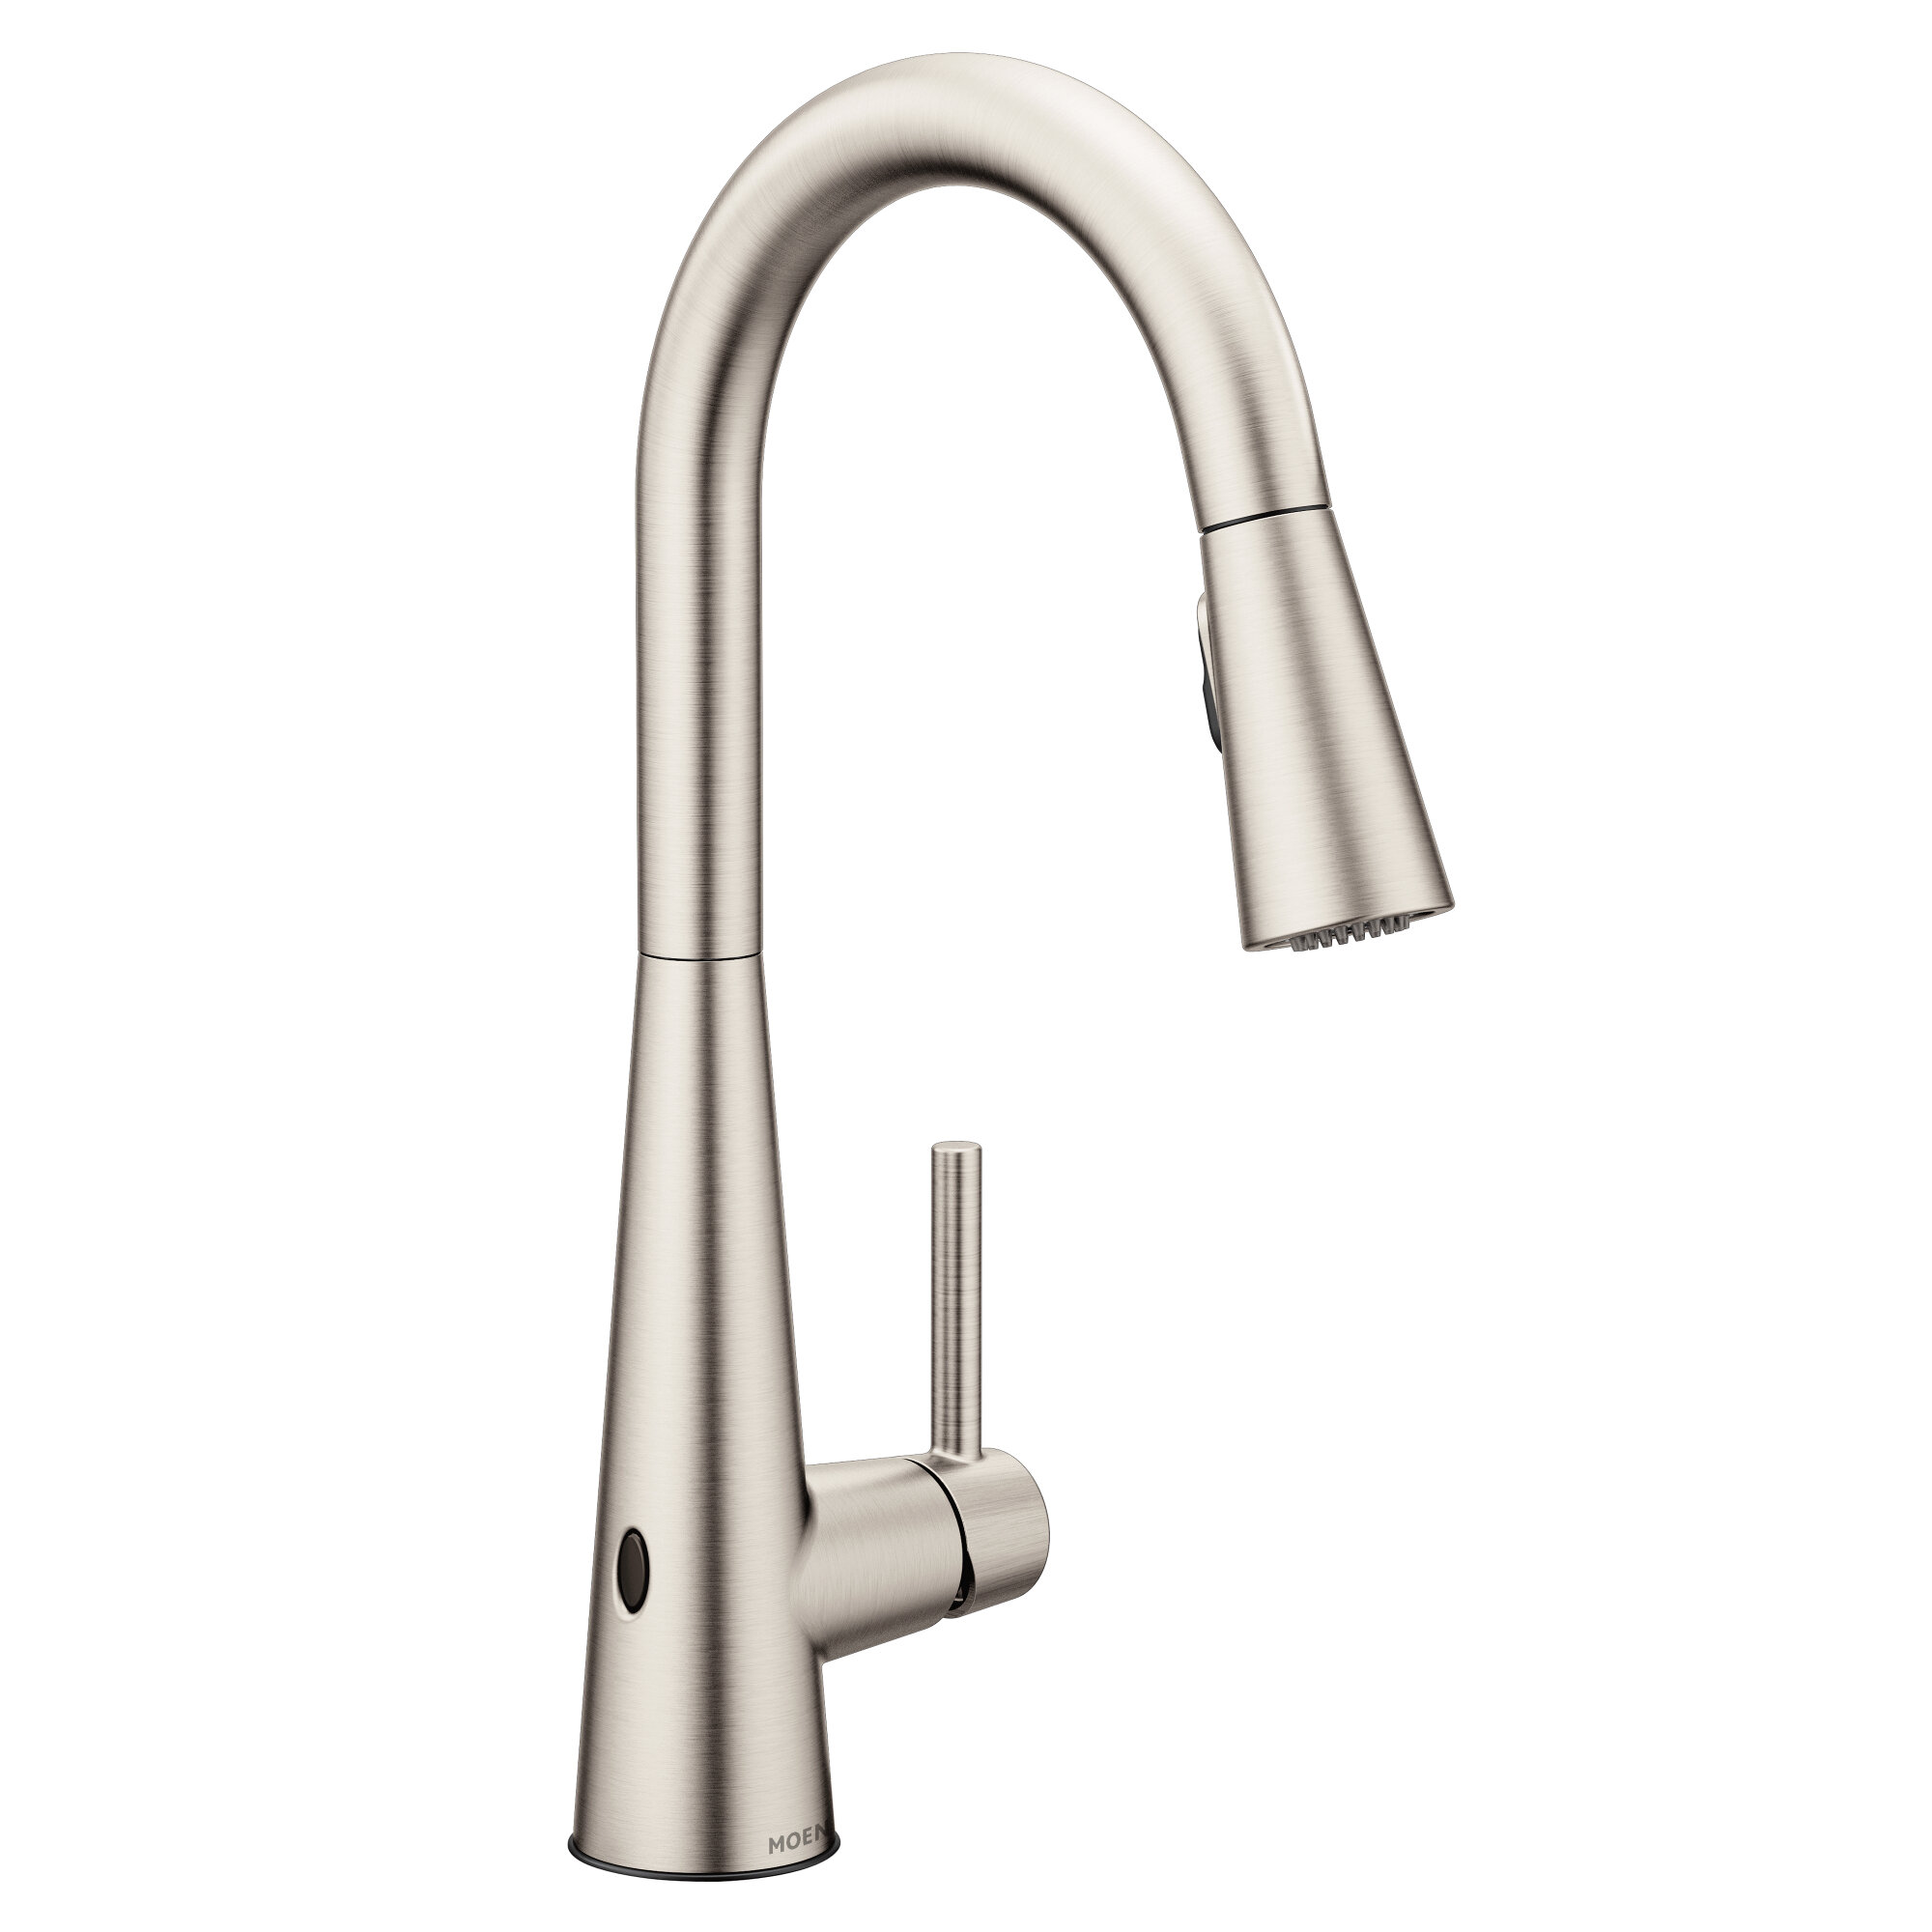 Moen Sleek Pull Down Touchless Single Handle Kitchen Faucet With